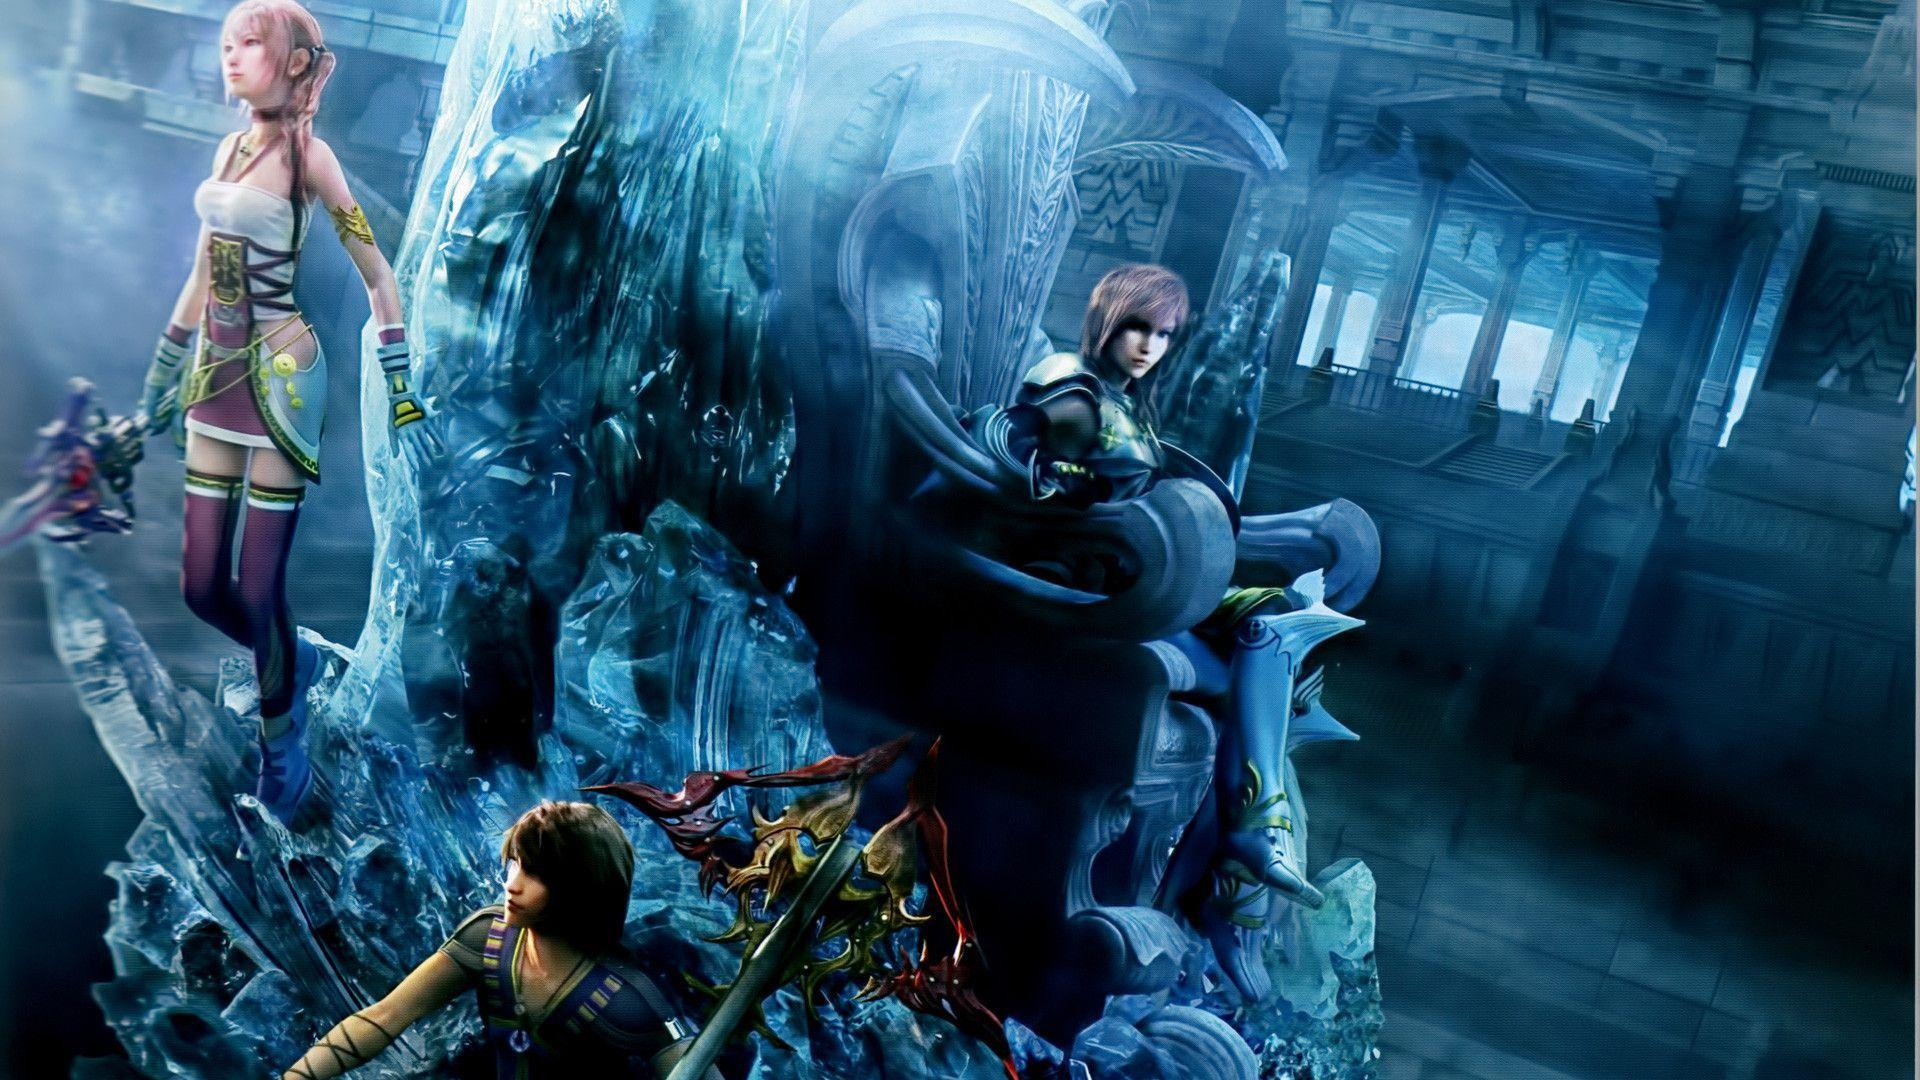 Final Fantasy XIII Wallpapers 1080p - Wallpaper Cave